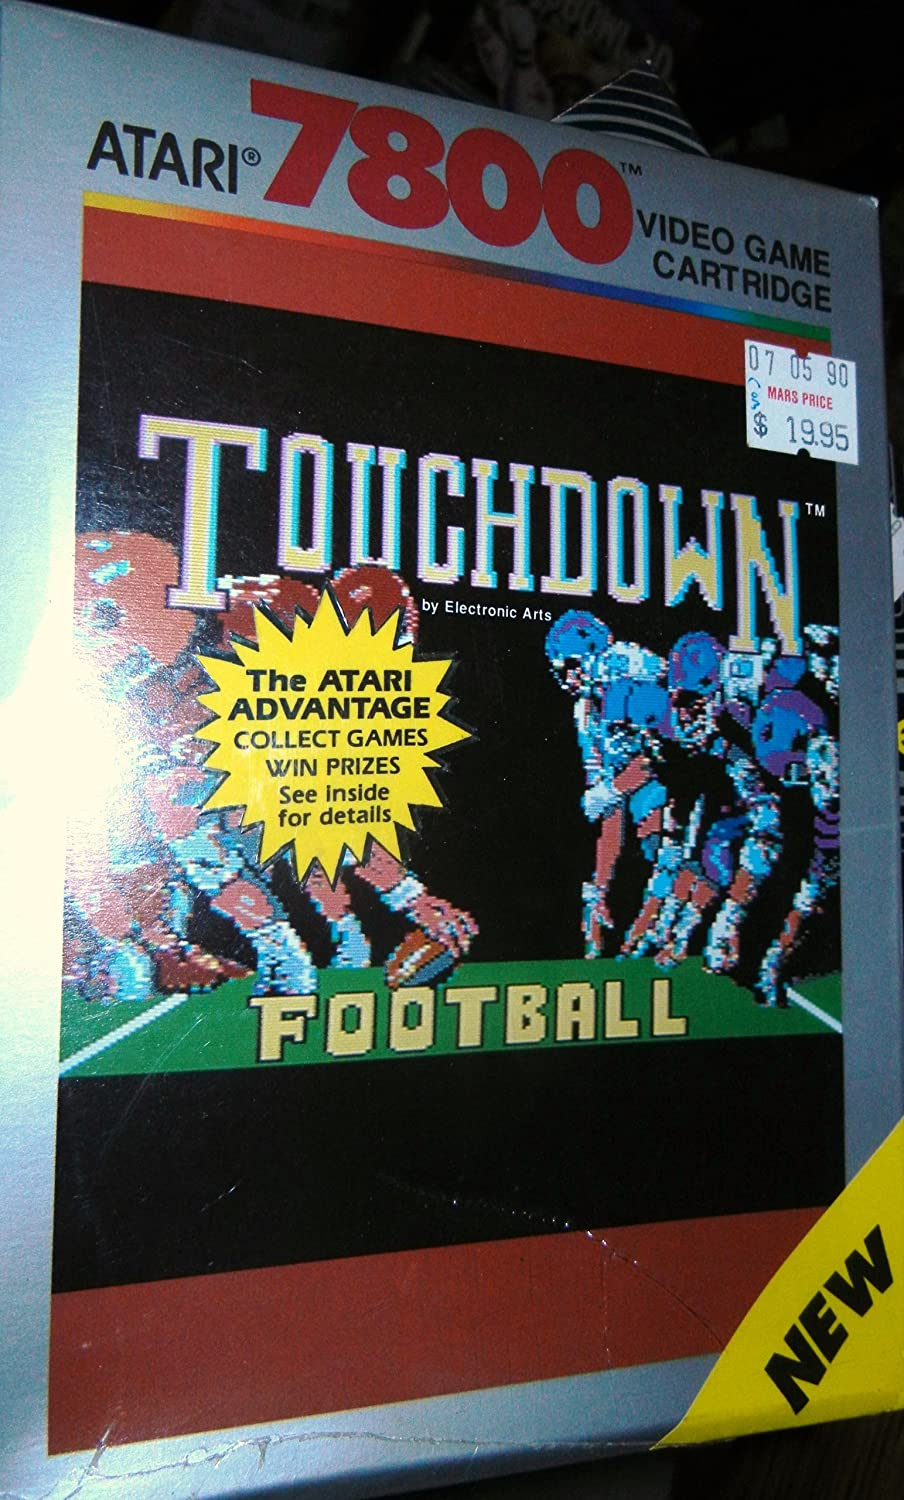 Atari 7800 - Touchdown Football - Made By Electronic Arts